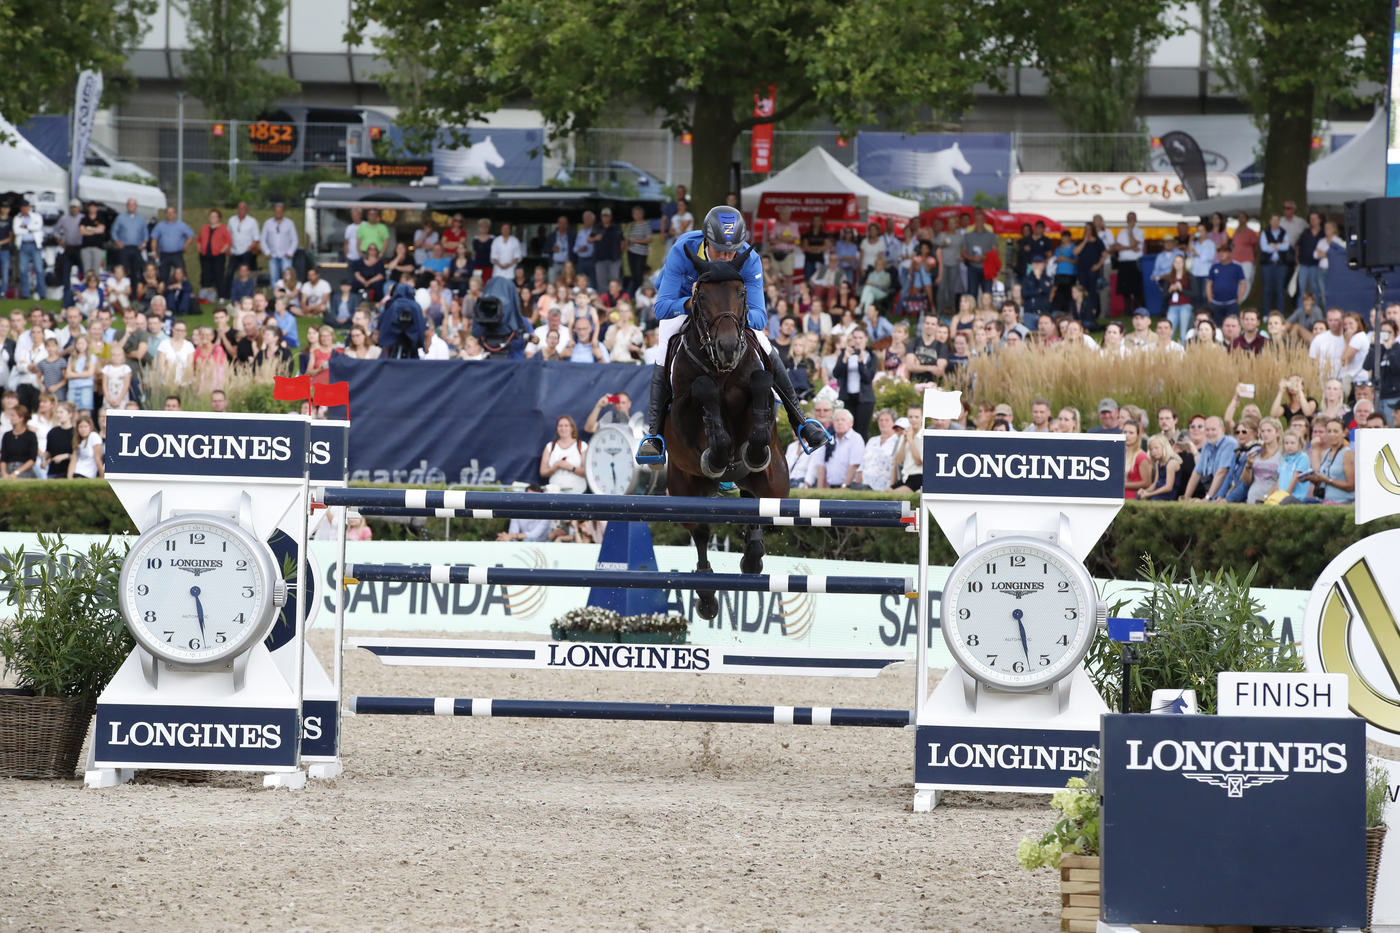 Longines Flat Racing Event: Berlin joined the Longines Global Champions Tour 5